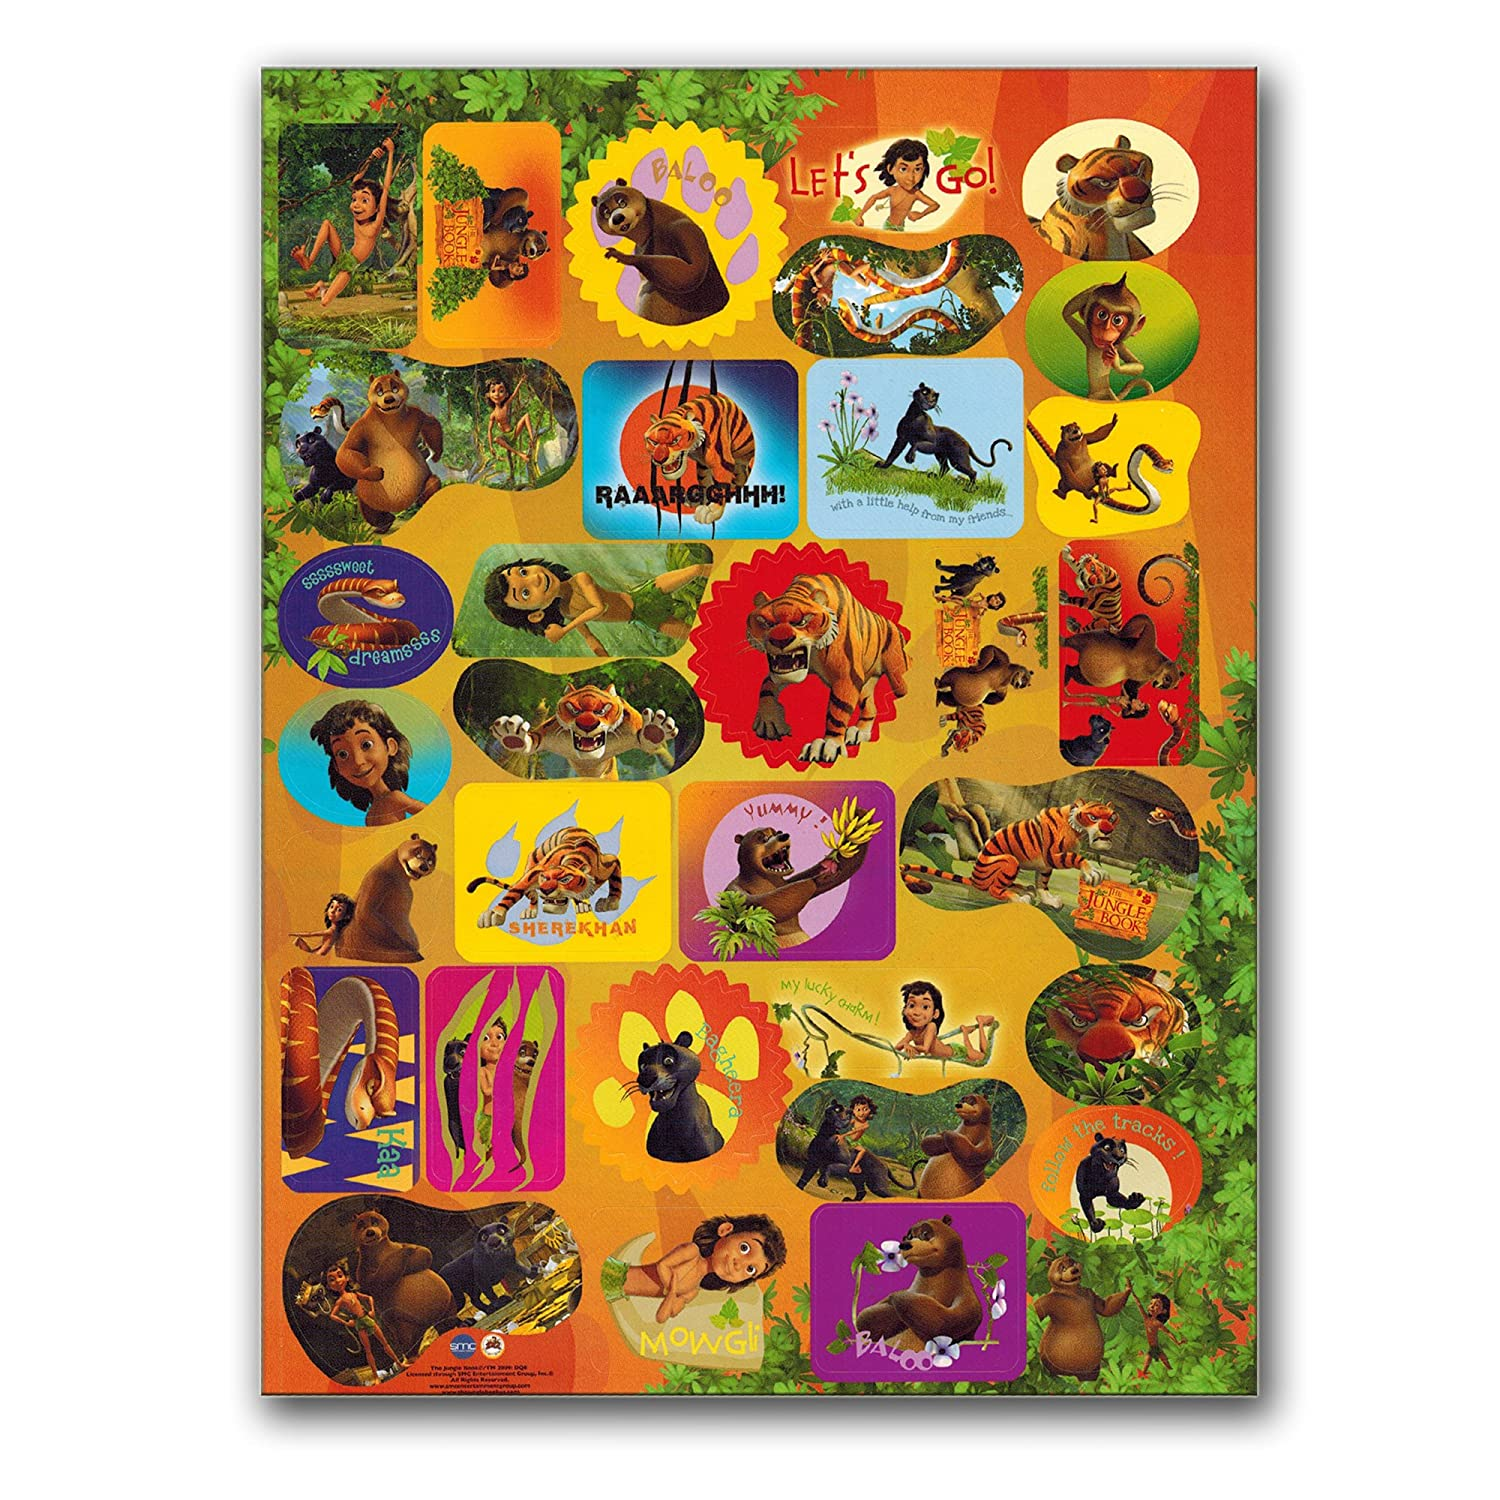 Jungle Book Coloring Book with Jungle Animals Stickers Giant 144 Pg Book, Jungle Book Party Supplies